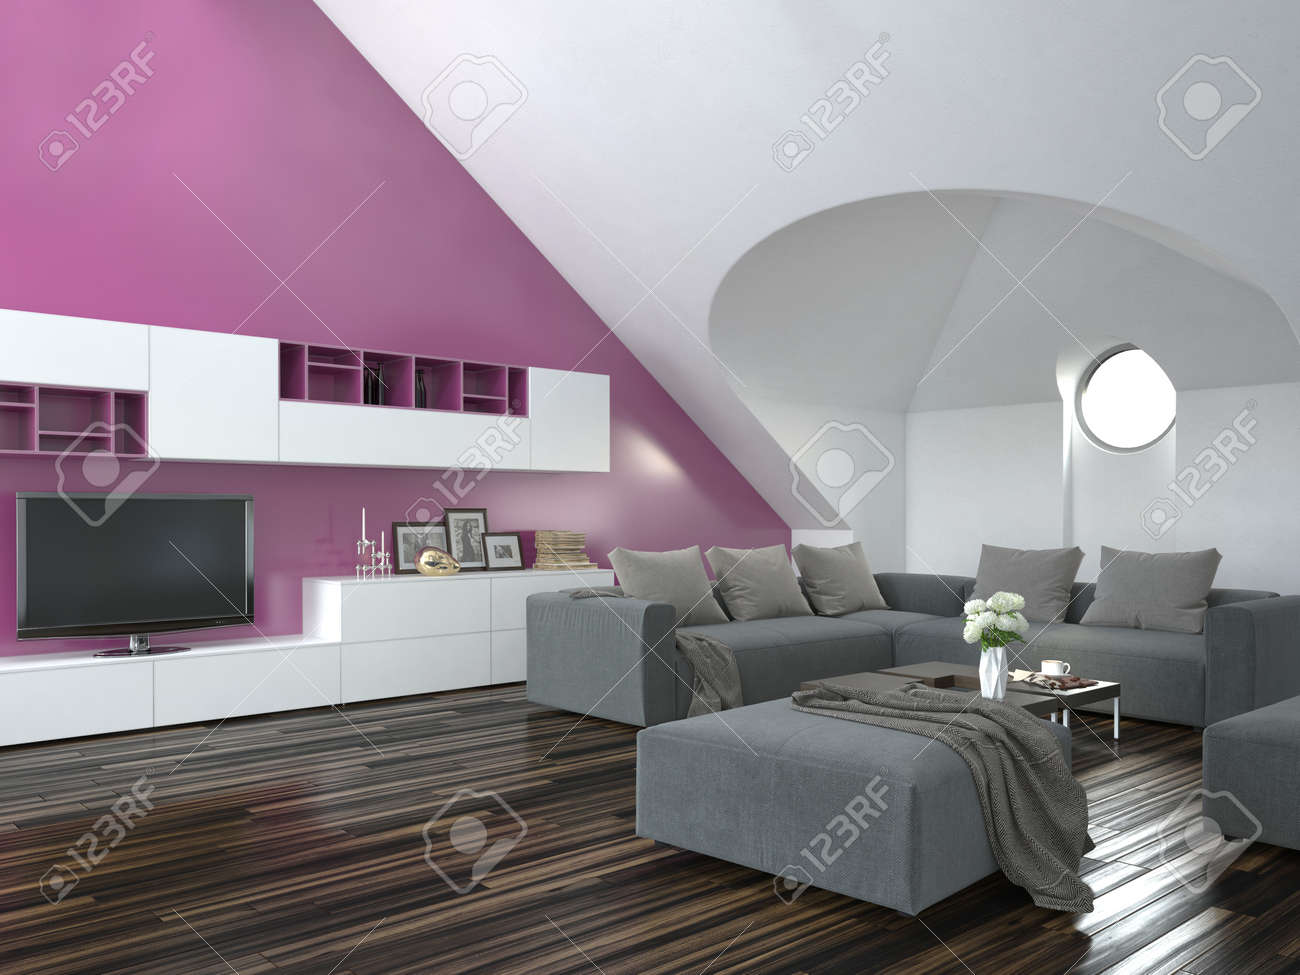 Modern Loft Living Room Interior With A Sloping Ceiling And Purple Accent Wall Grey